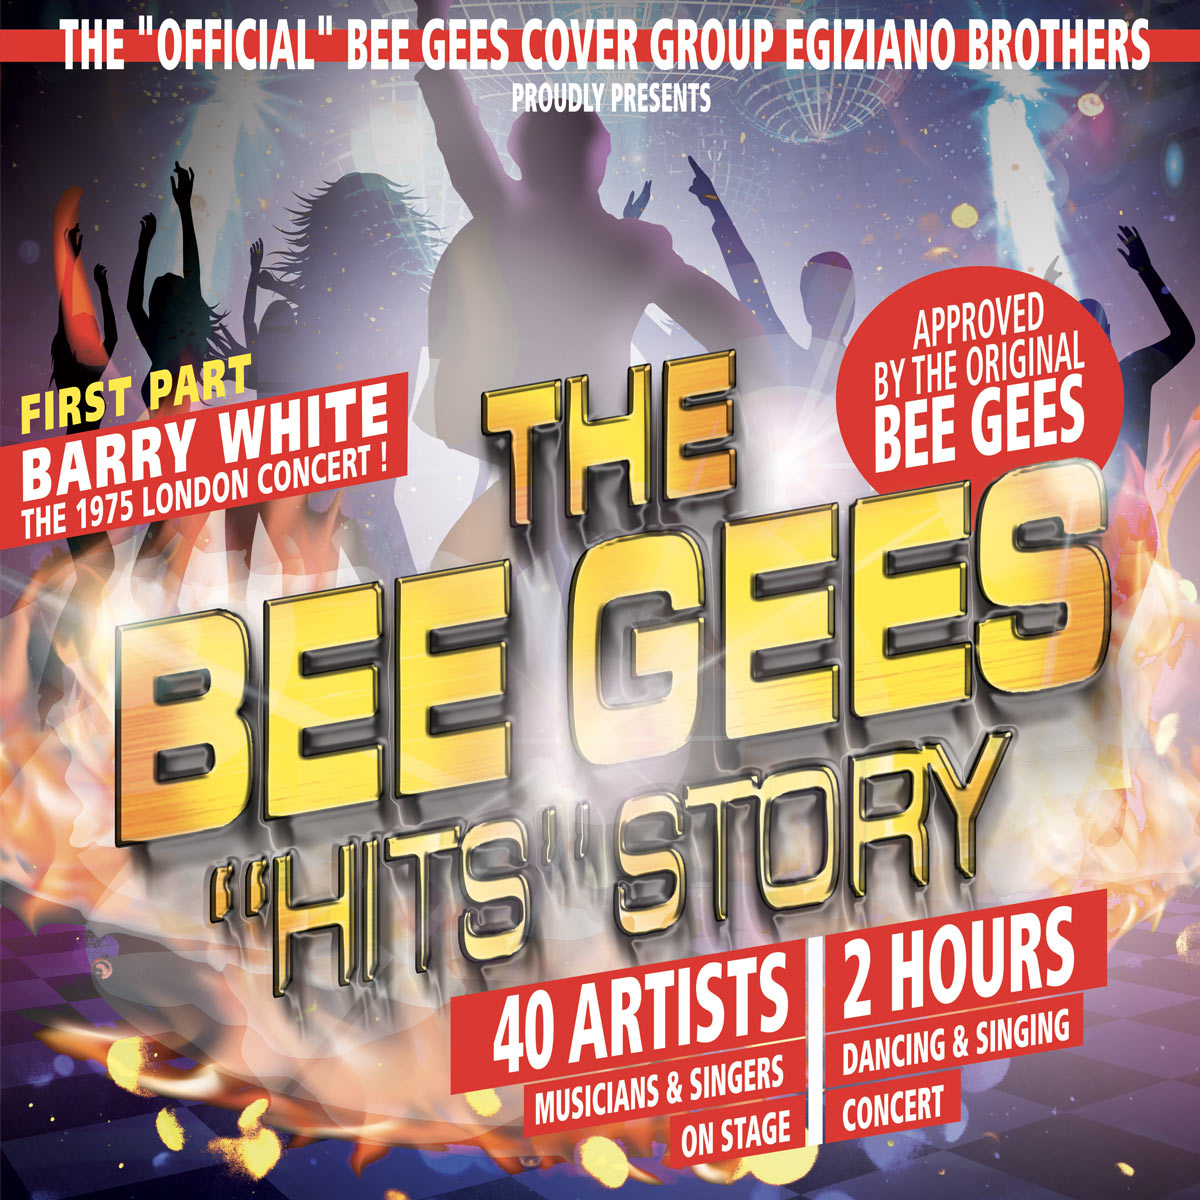 The Bee Gees - Hits Story... Cover (Egiziano Brothers) approved by the original Bee Gees